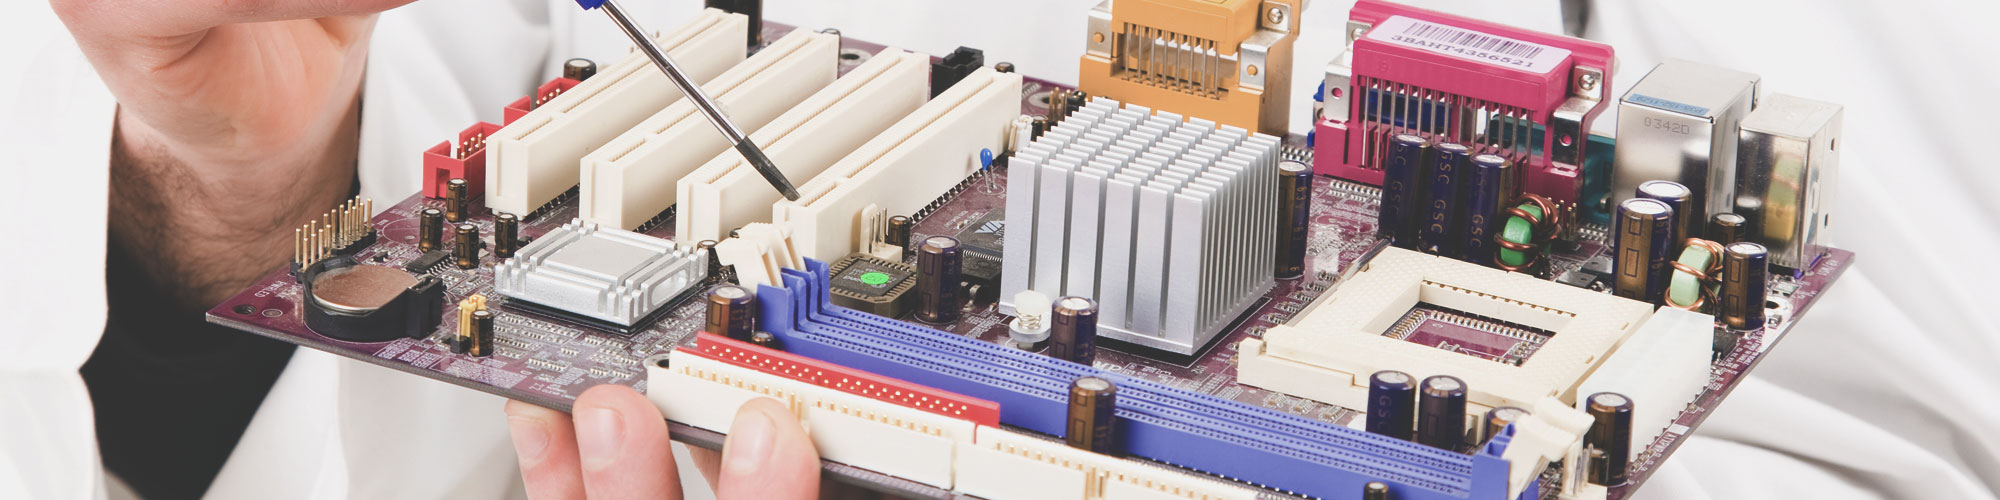 Electronic Components Distributor | About Us - Altamonte Springs, FL